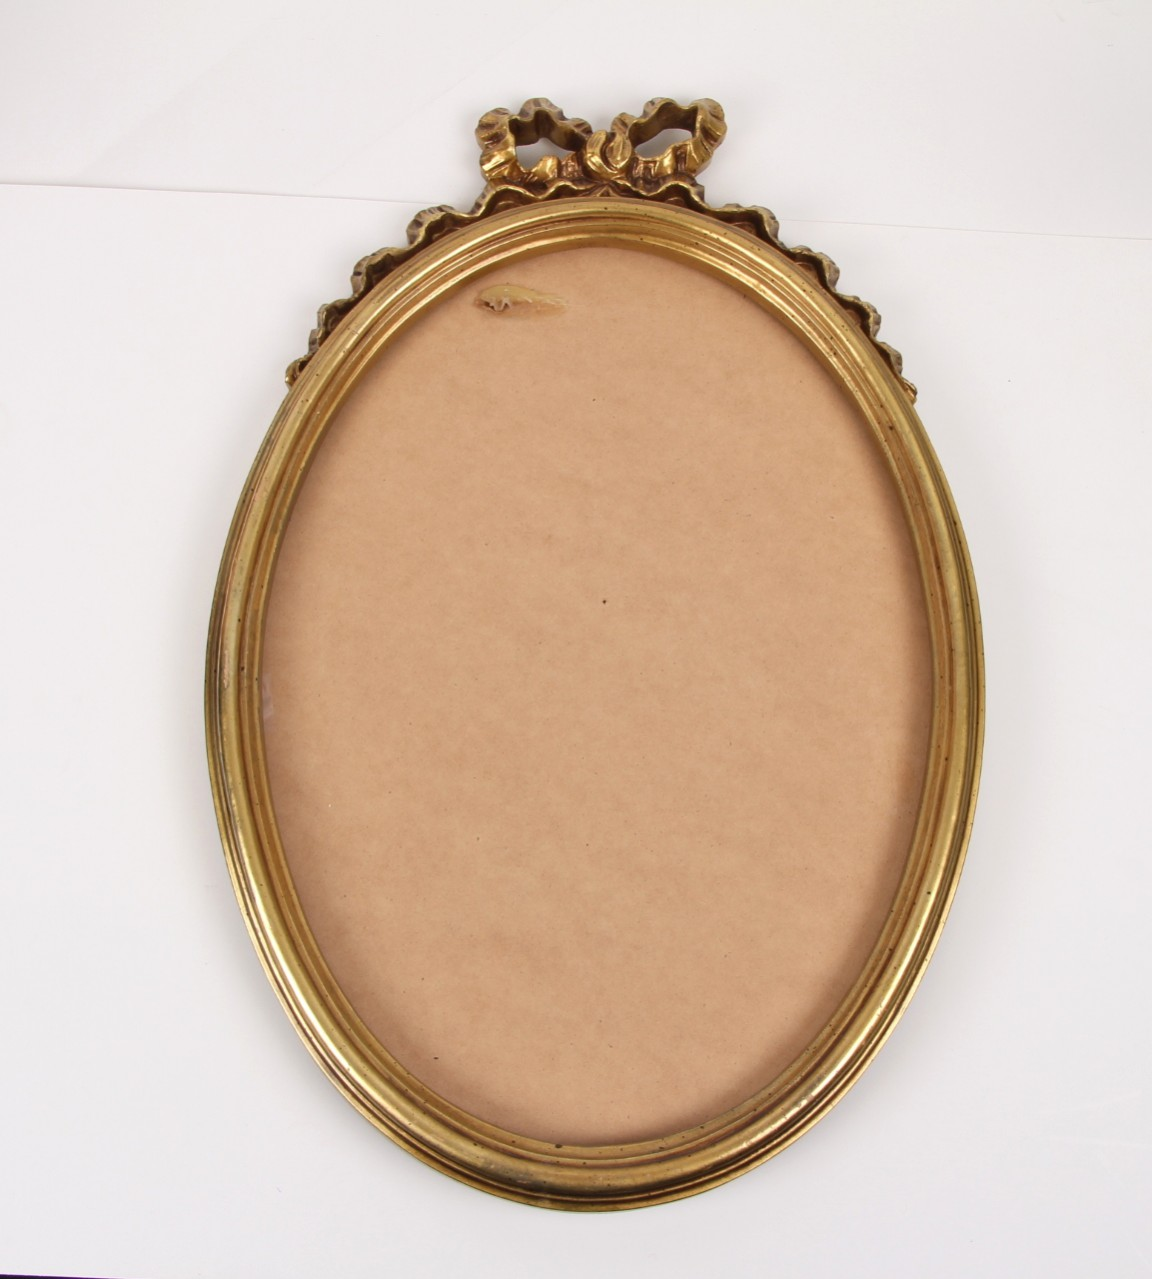 gold mirror frame with ribbon design on top no glass